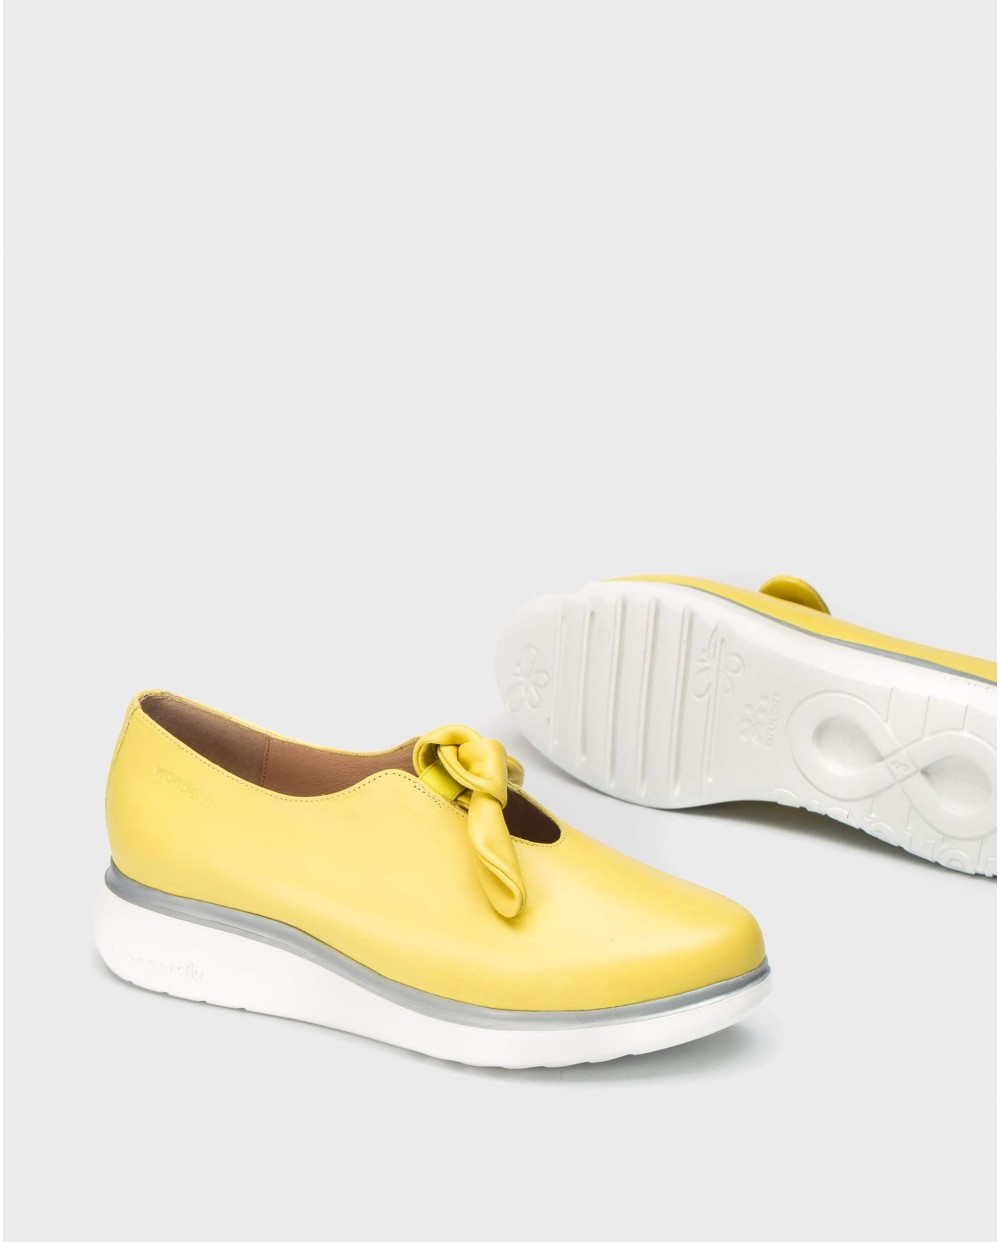 Wonders-Wedges-Moccasins with bow detail